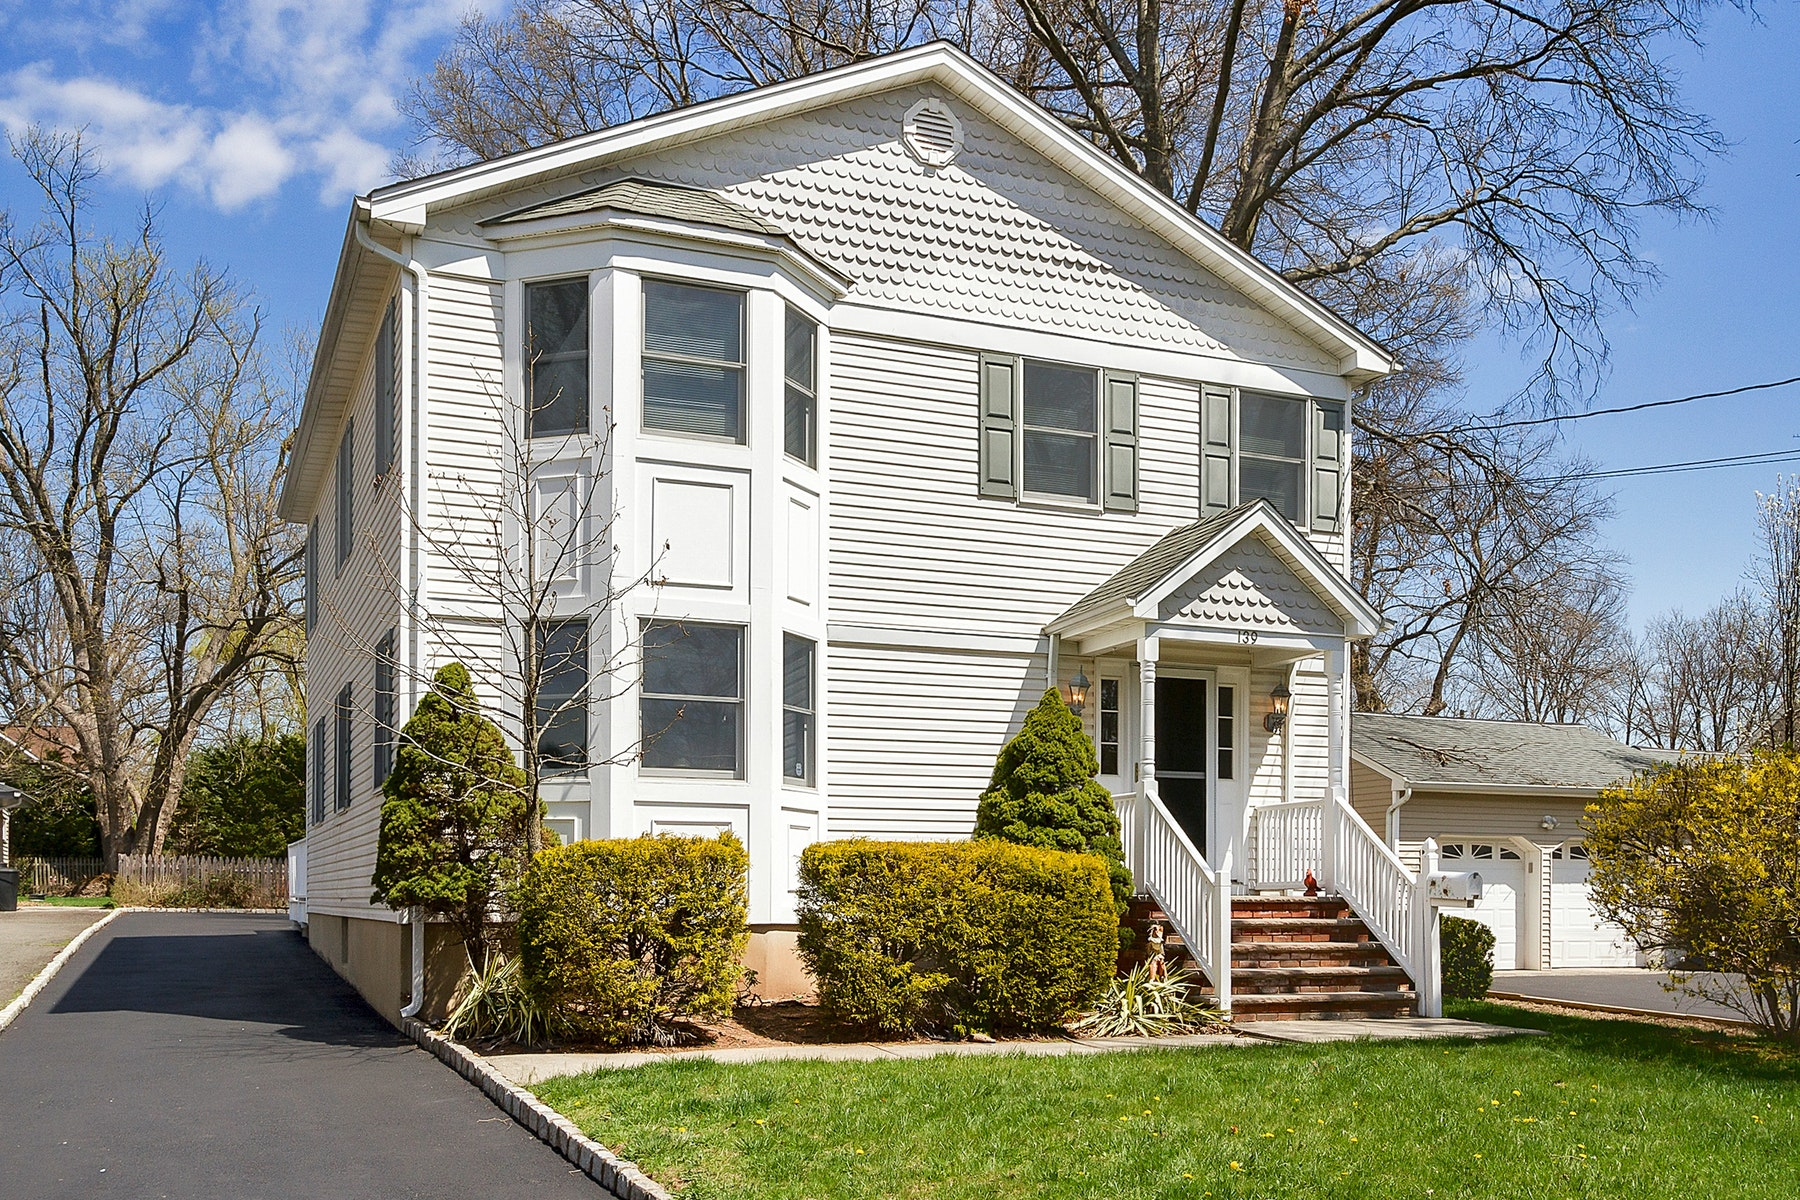 Single Family Home for Sale at Classic Colonial 139 Lamberts Mill Road Westfield, New Jersey, 07090 United States